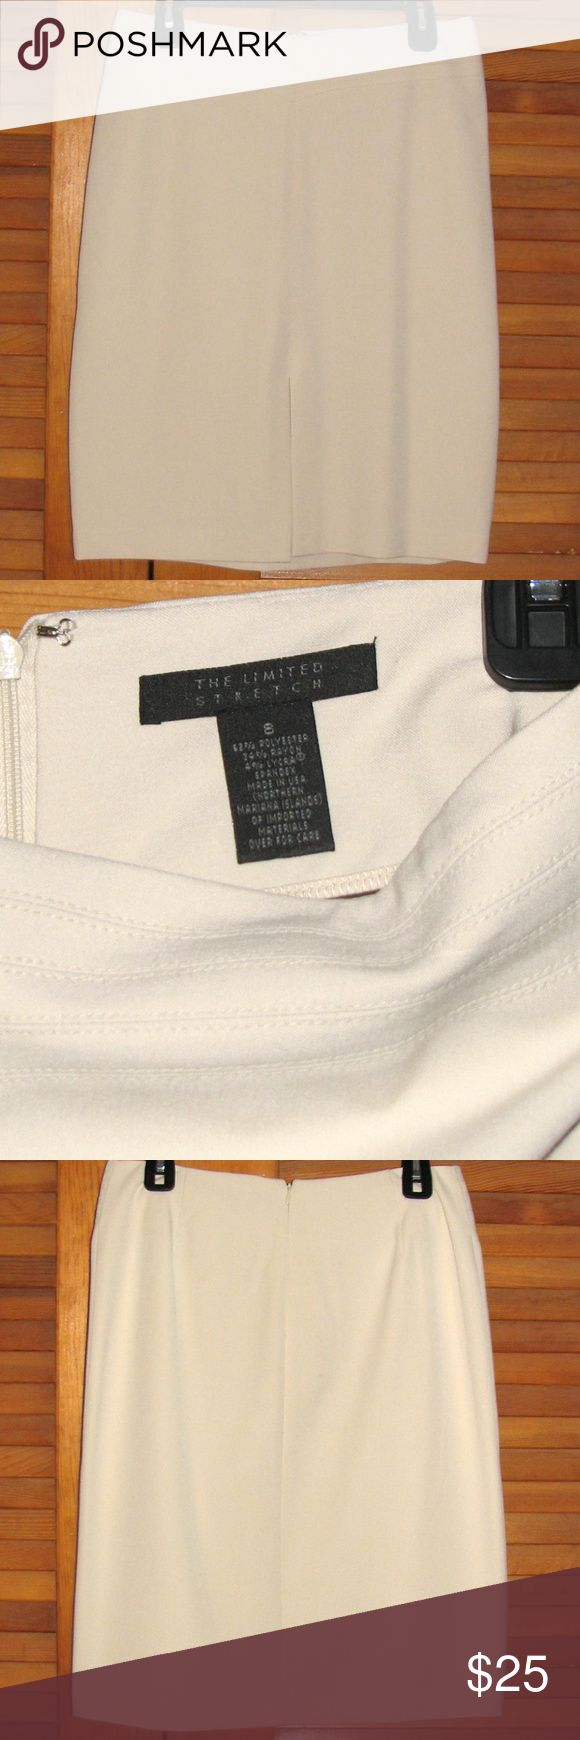 """The Limited stretch ivory pencil skirt 7 1/2"""" slit in front, stitched slight v-shaped section on flat front. Zipper and hook in back. Measures approximately 15 1/2"""" across waist when laid flat (but stretches to 16"""").  23"""" top of zipper to hem. 62% polyester, 34% rayon, 4% lycra Dry clean.  Smoke-free home! The Limited Skirts Pencil"""